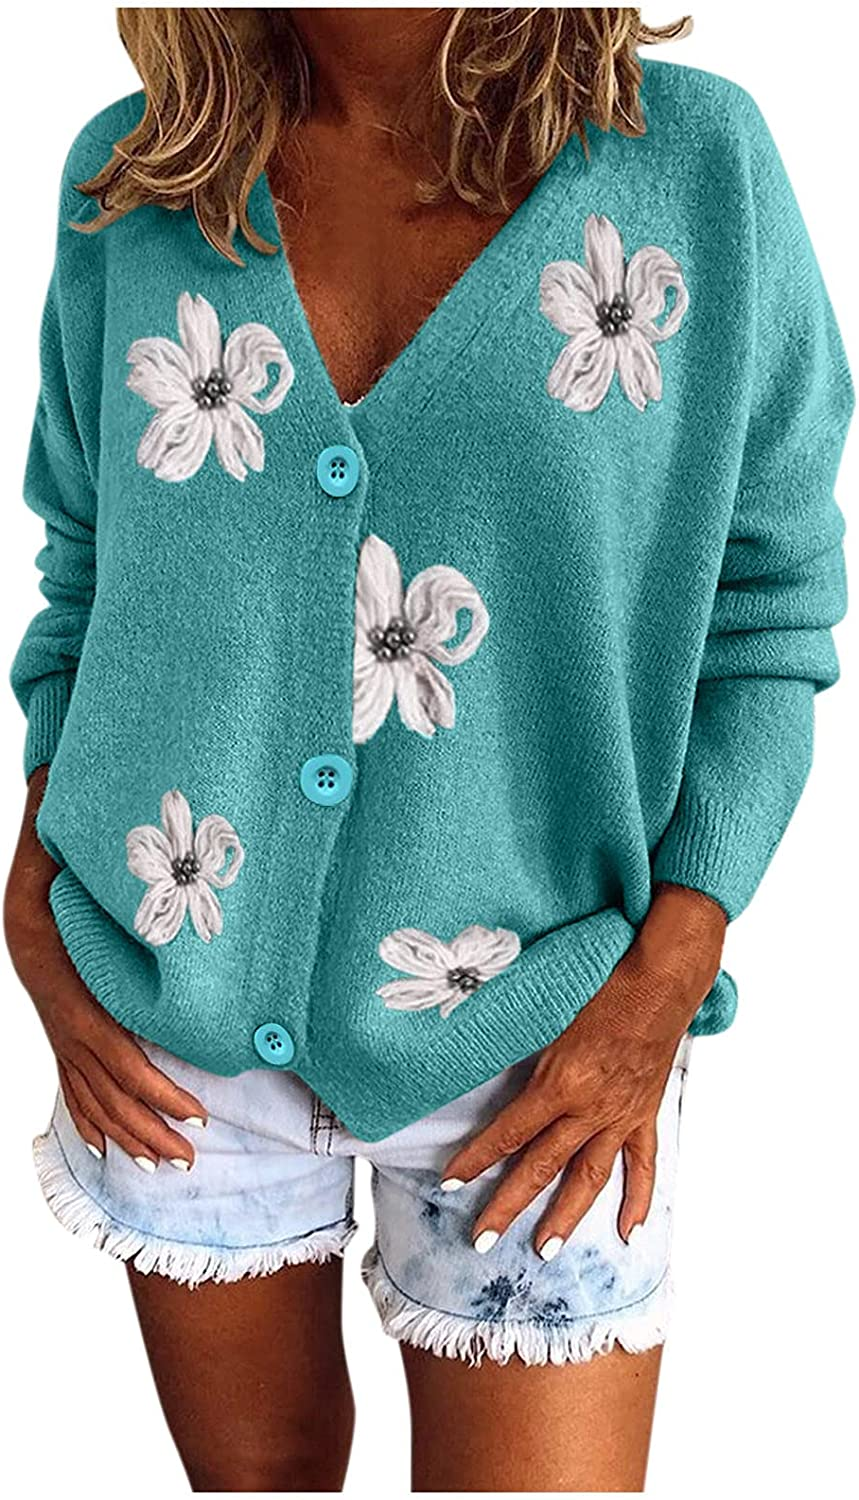 YfiDSJFGJ Cardigan Max 66% OFF Sweaters for Women Knitted Long Sleeve OFFicial store V-Neck